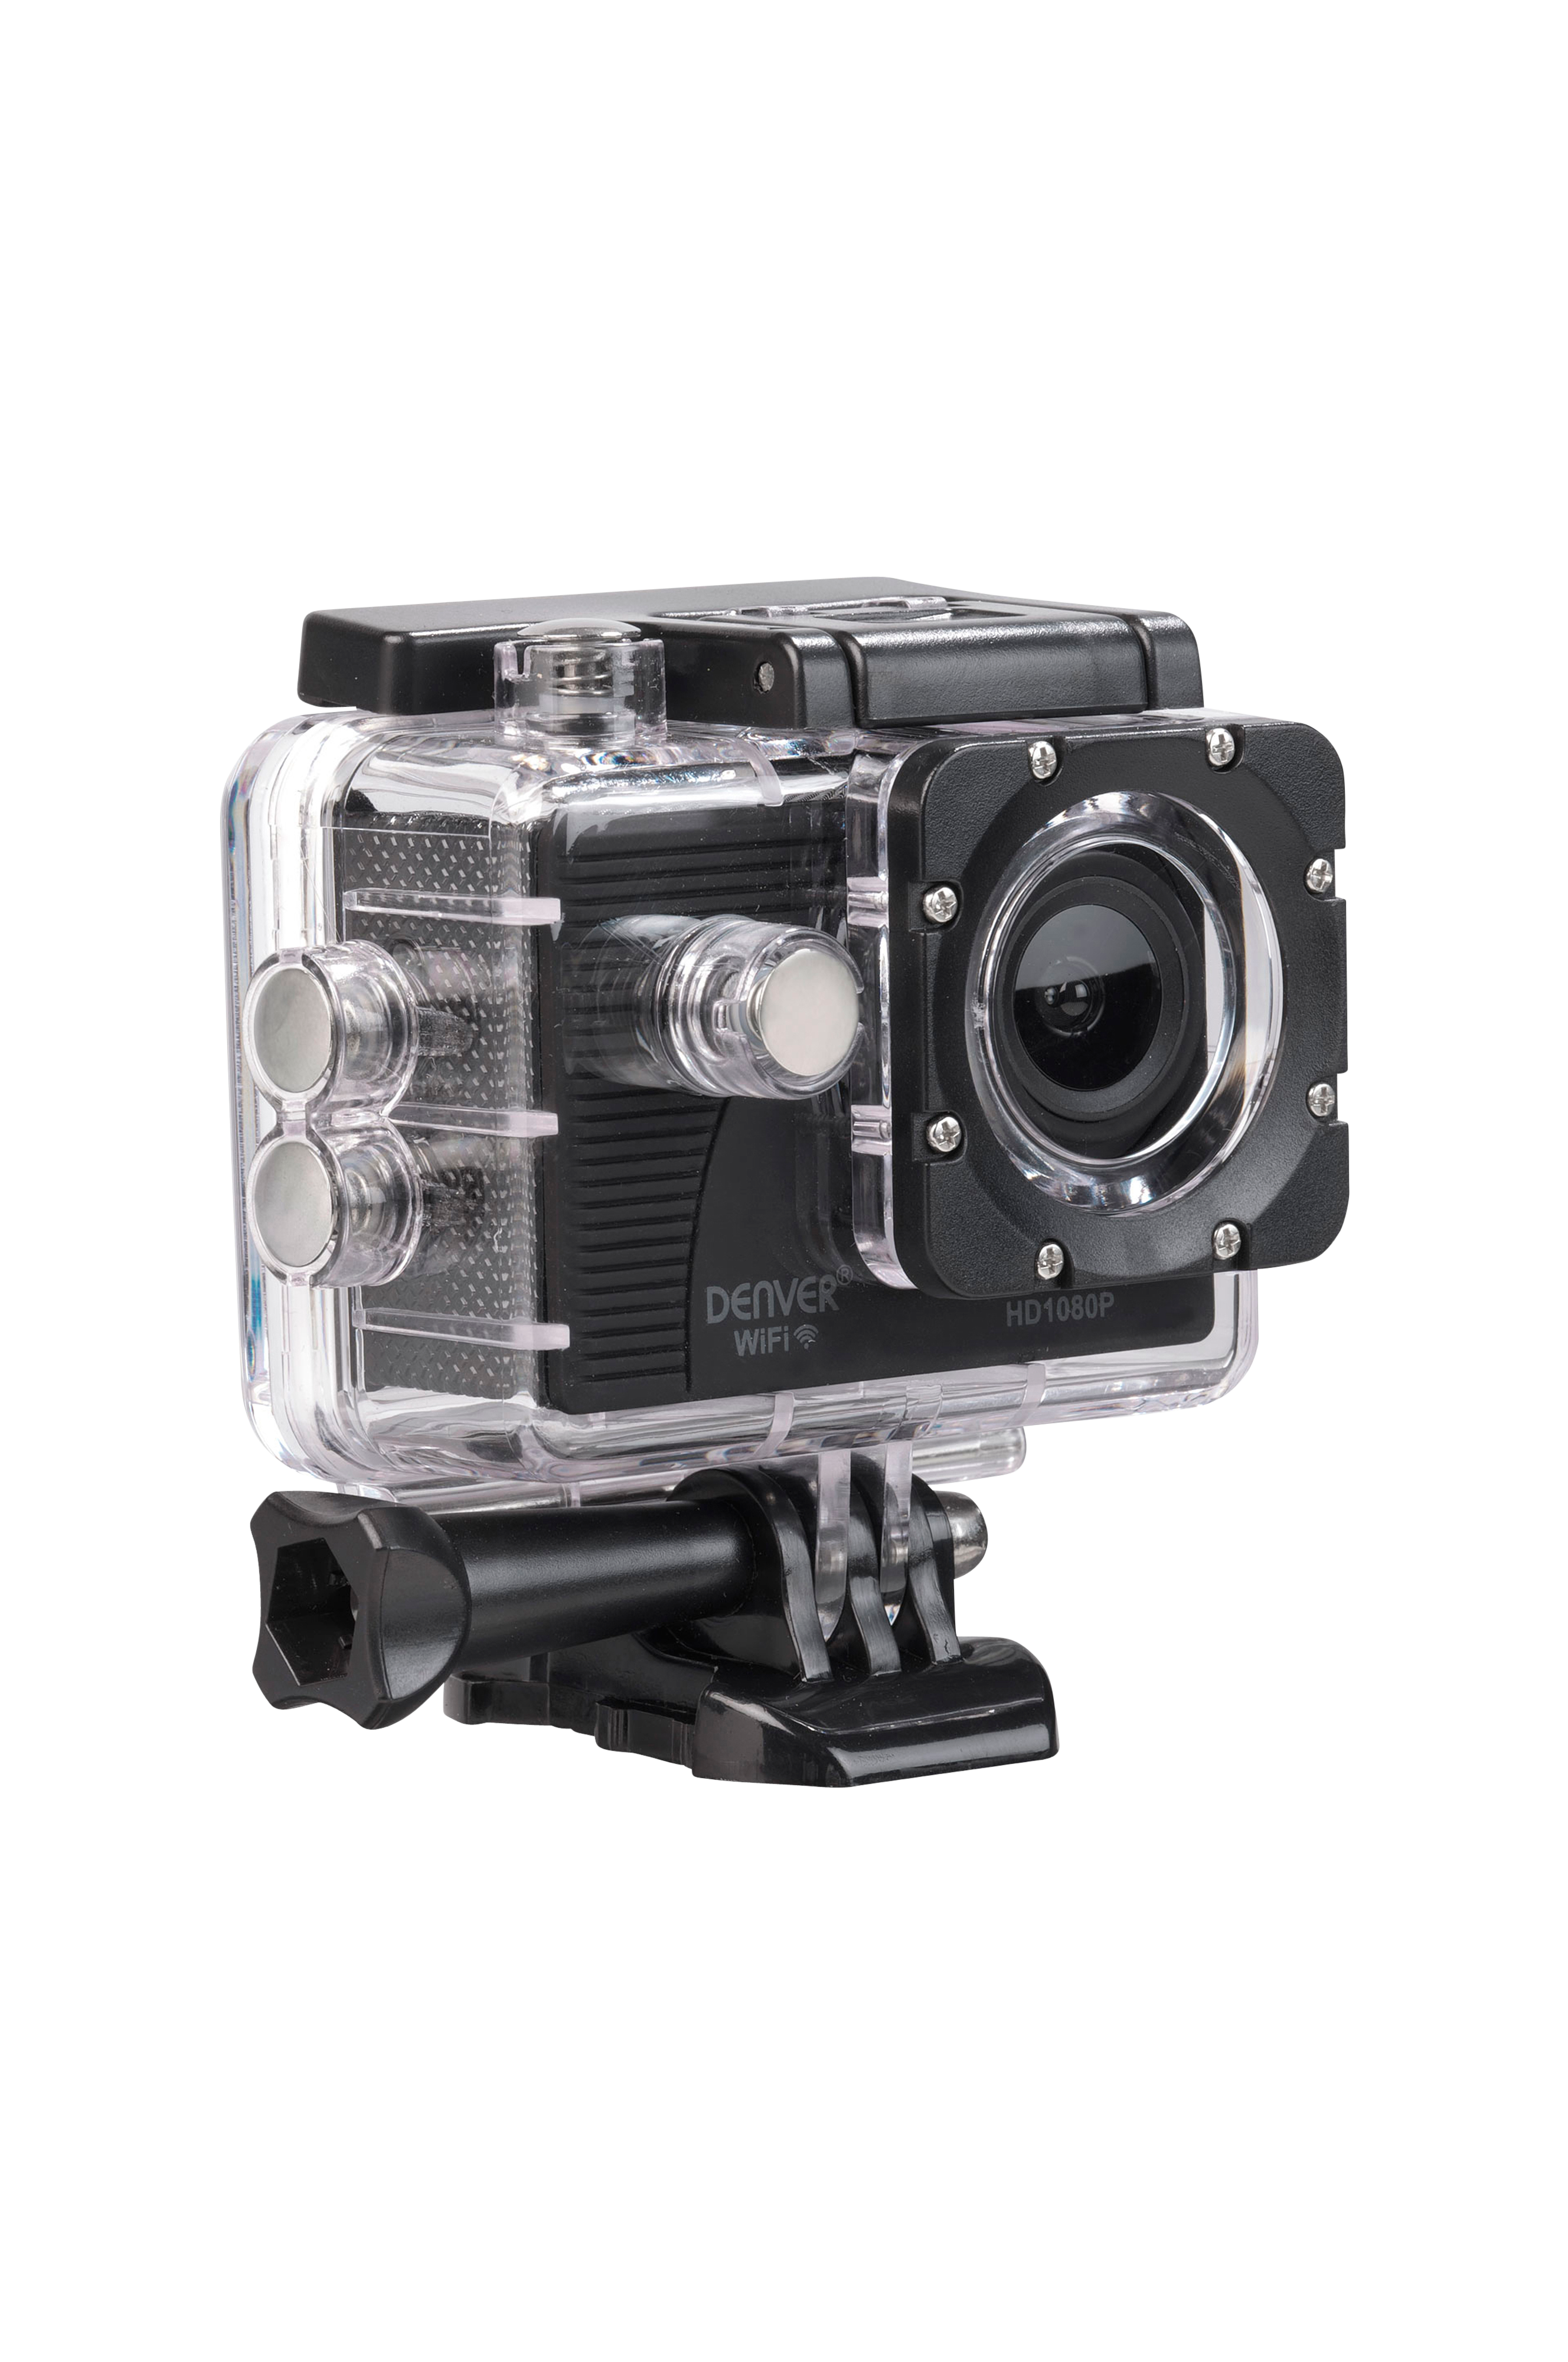 Full HD Action cam with Wi Fi